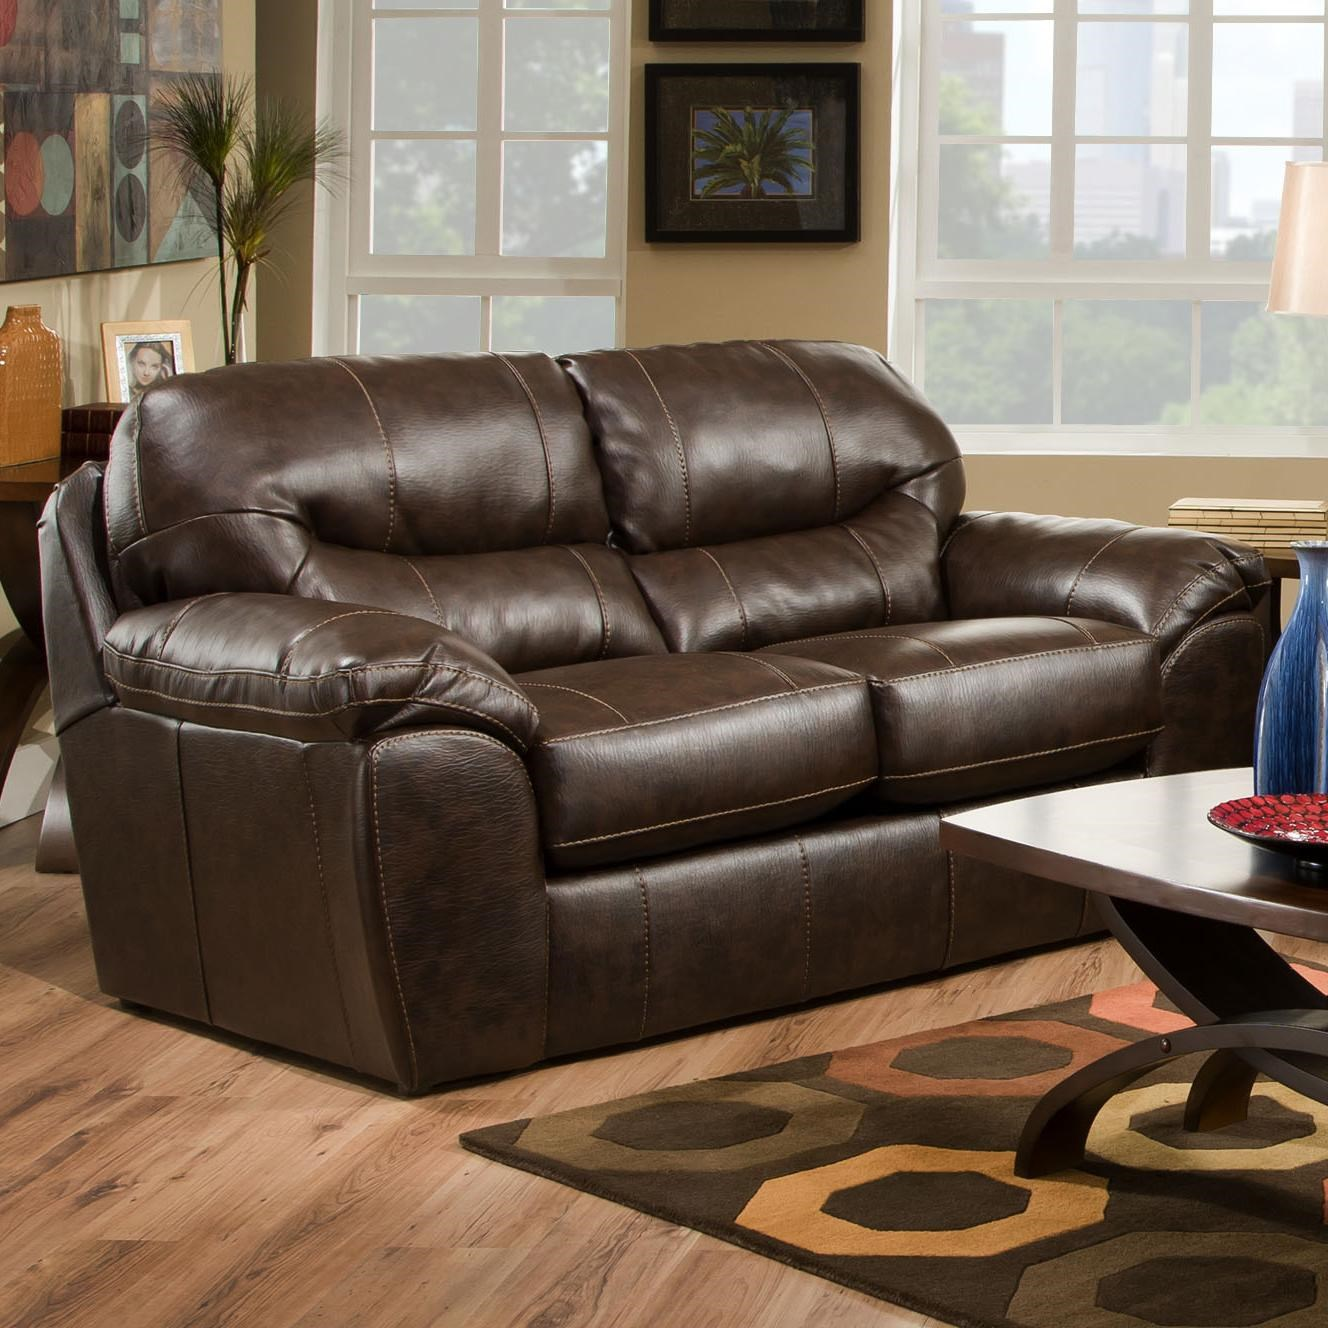 Jackson Furniture Brantley Contemporary Loveseat with